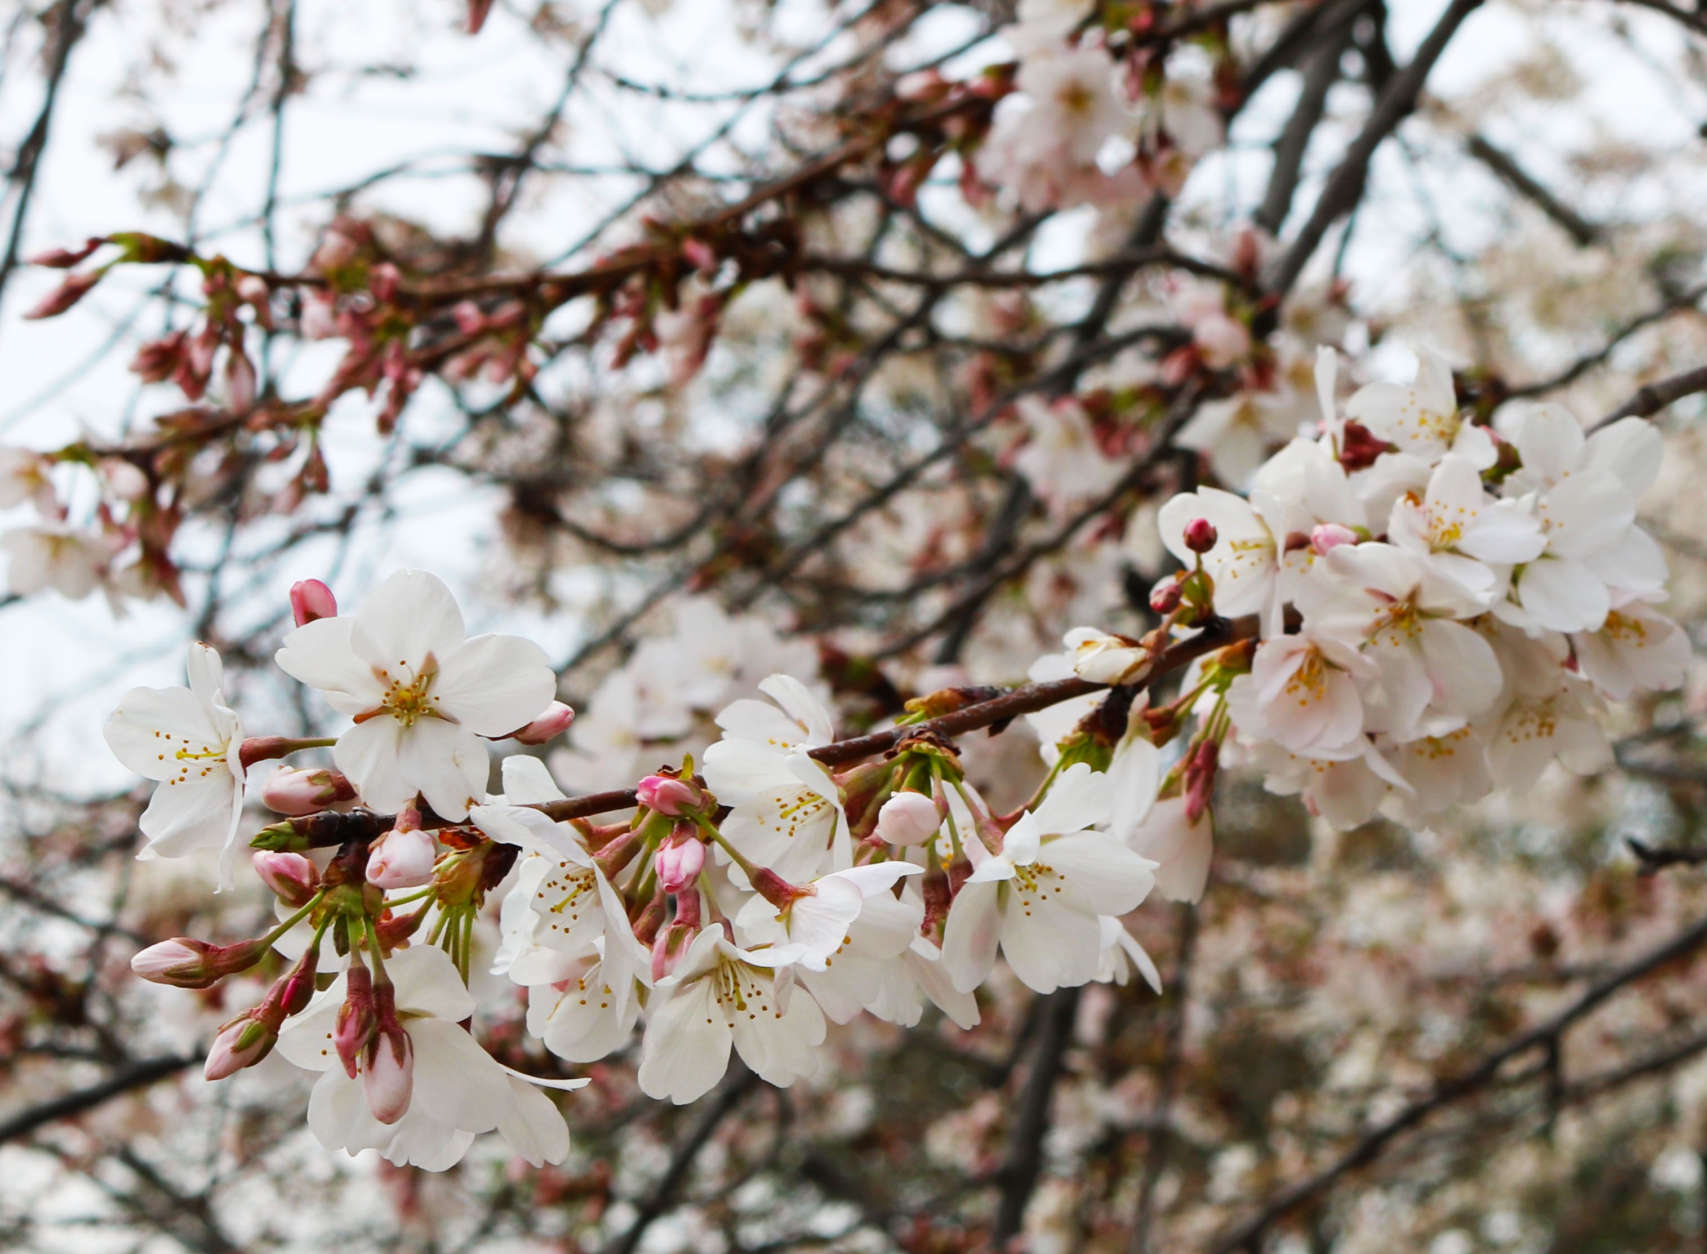 Around 70 percent of the trees around the Tidal Basin are in bloom the weekend of March 25. (WTOP/Hanna Choi)